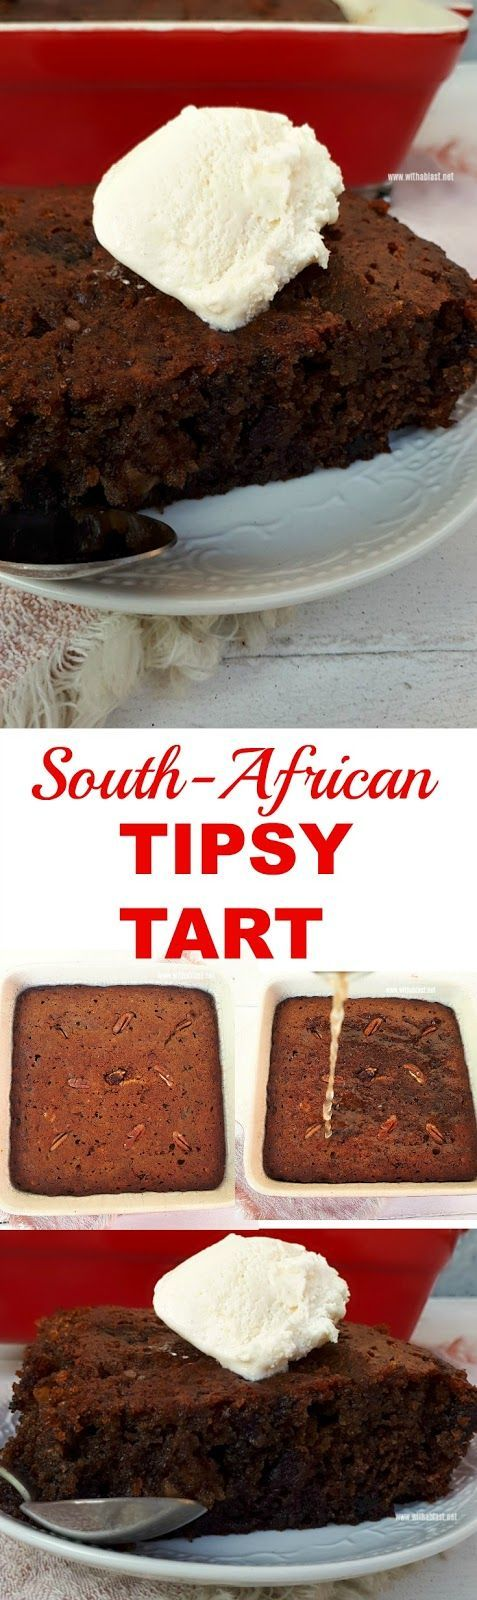 Rich, sweet and sticky delicious Tipsy Tart ! #TipsyTart #SouthAfrican #BakedDessert